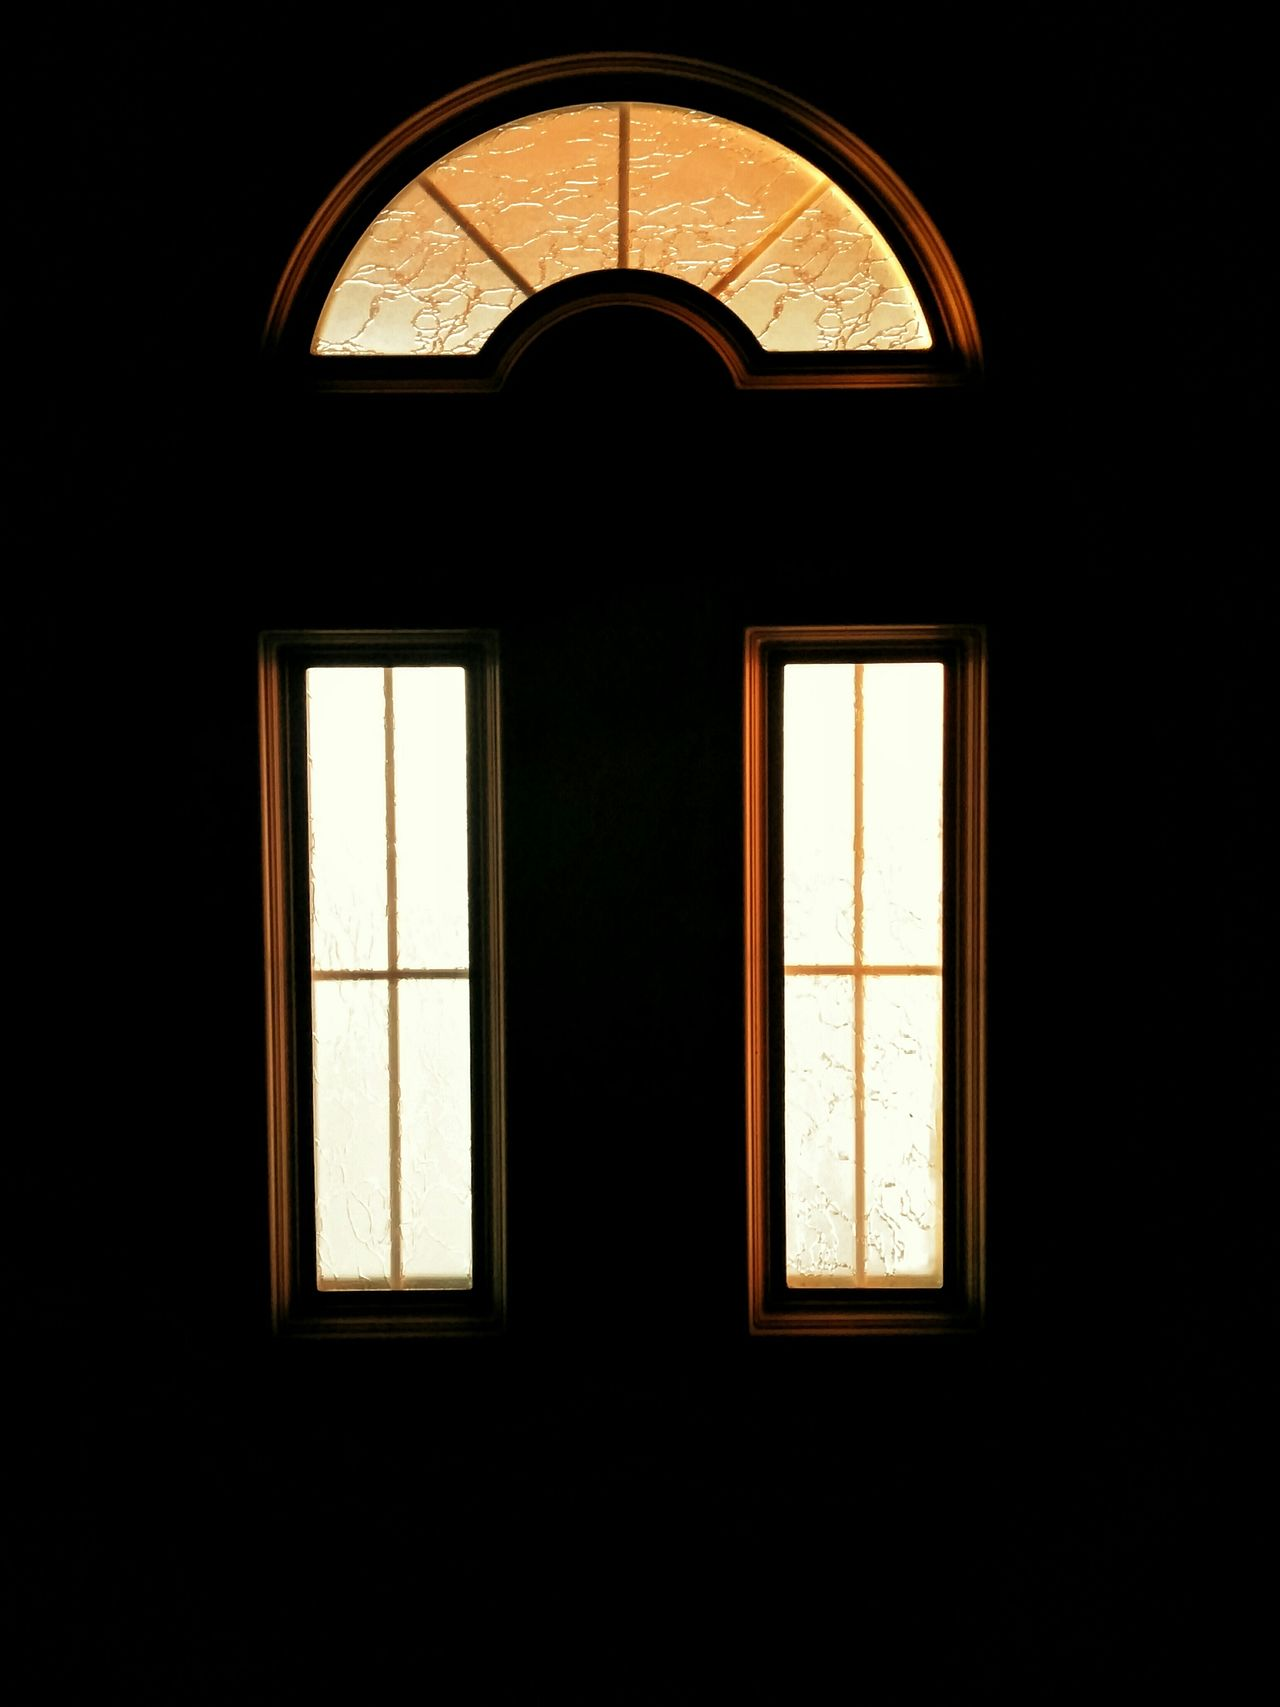 Arch Dark Door EyeEm Best Edits EyeEm Best Shots Geometric Shape Gloving Gloving Light Light And Shadow No People Sun Rays Sunrise Warm Colors Warm Photo Home Is Where The Art Is Pivotal Ideas Color Palette